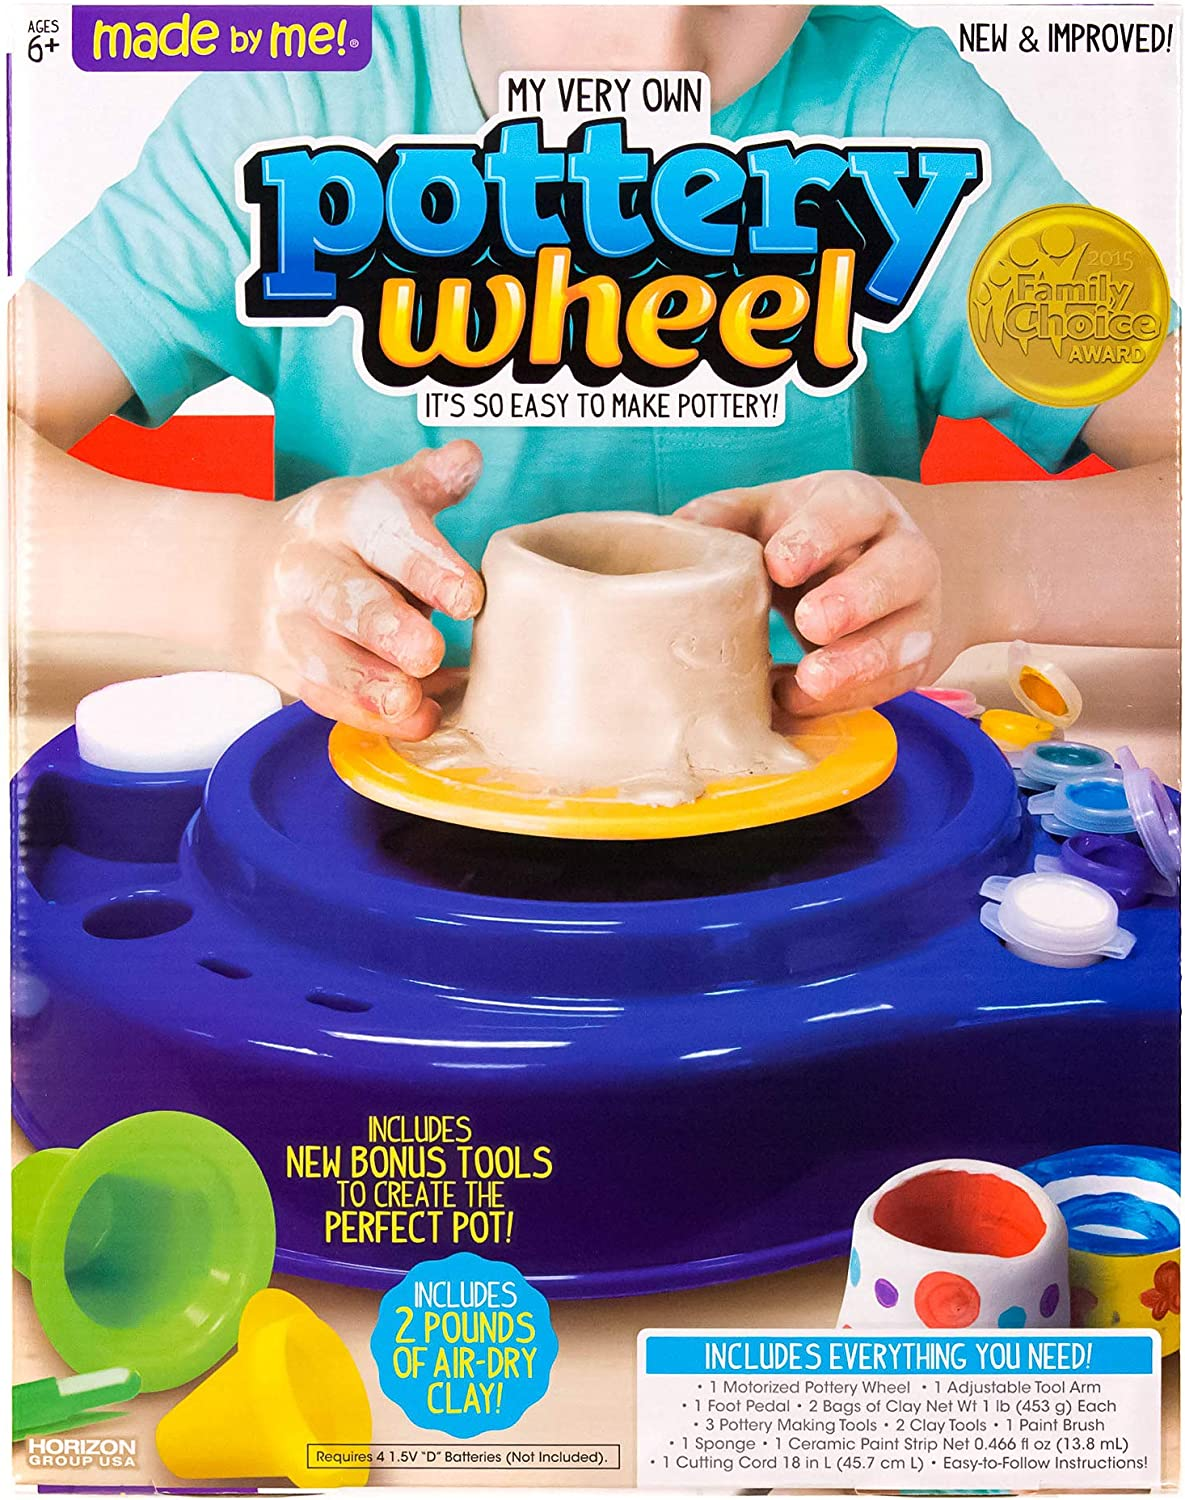 Made By Me My Very Own Pottery Wheel Kit by Horizon Group USA